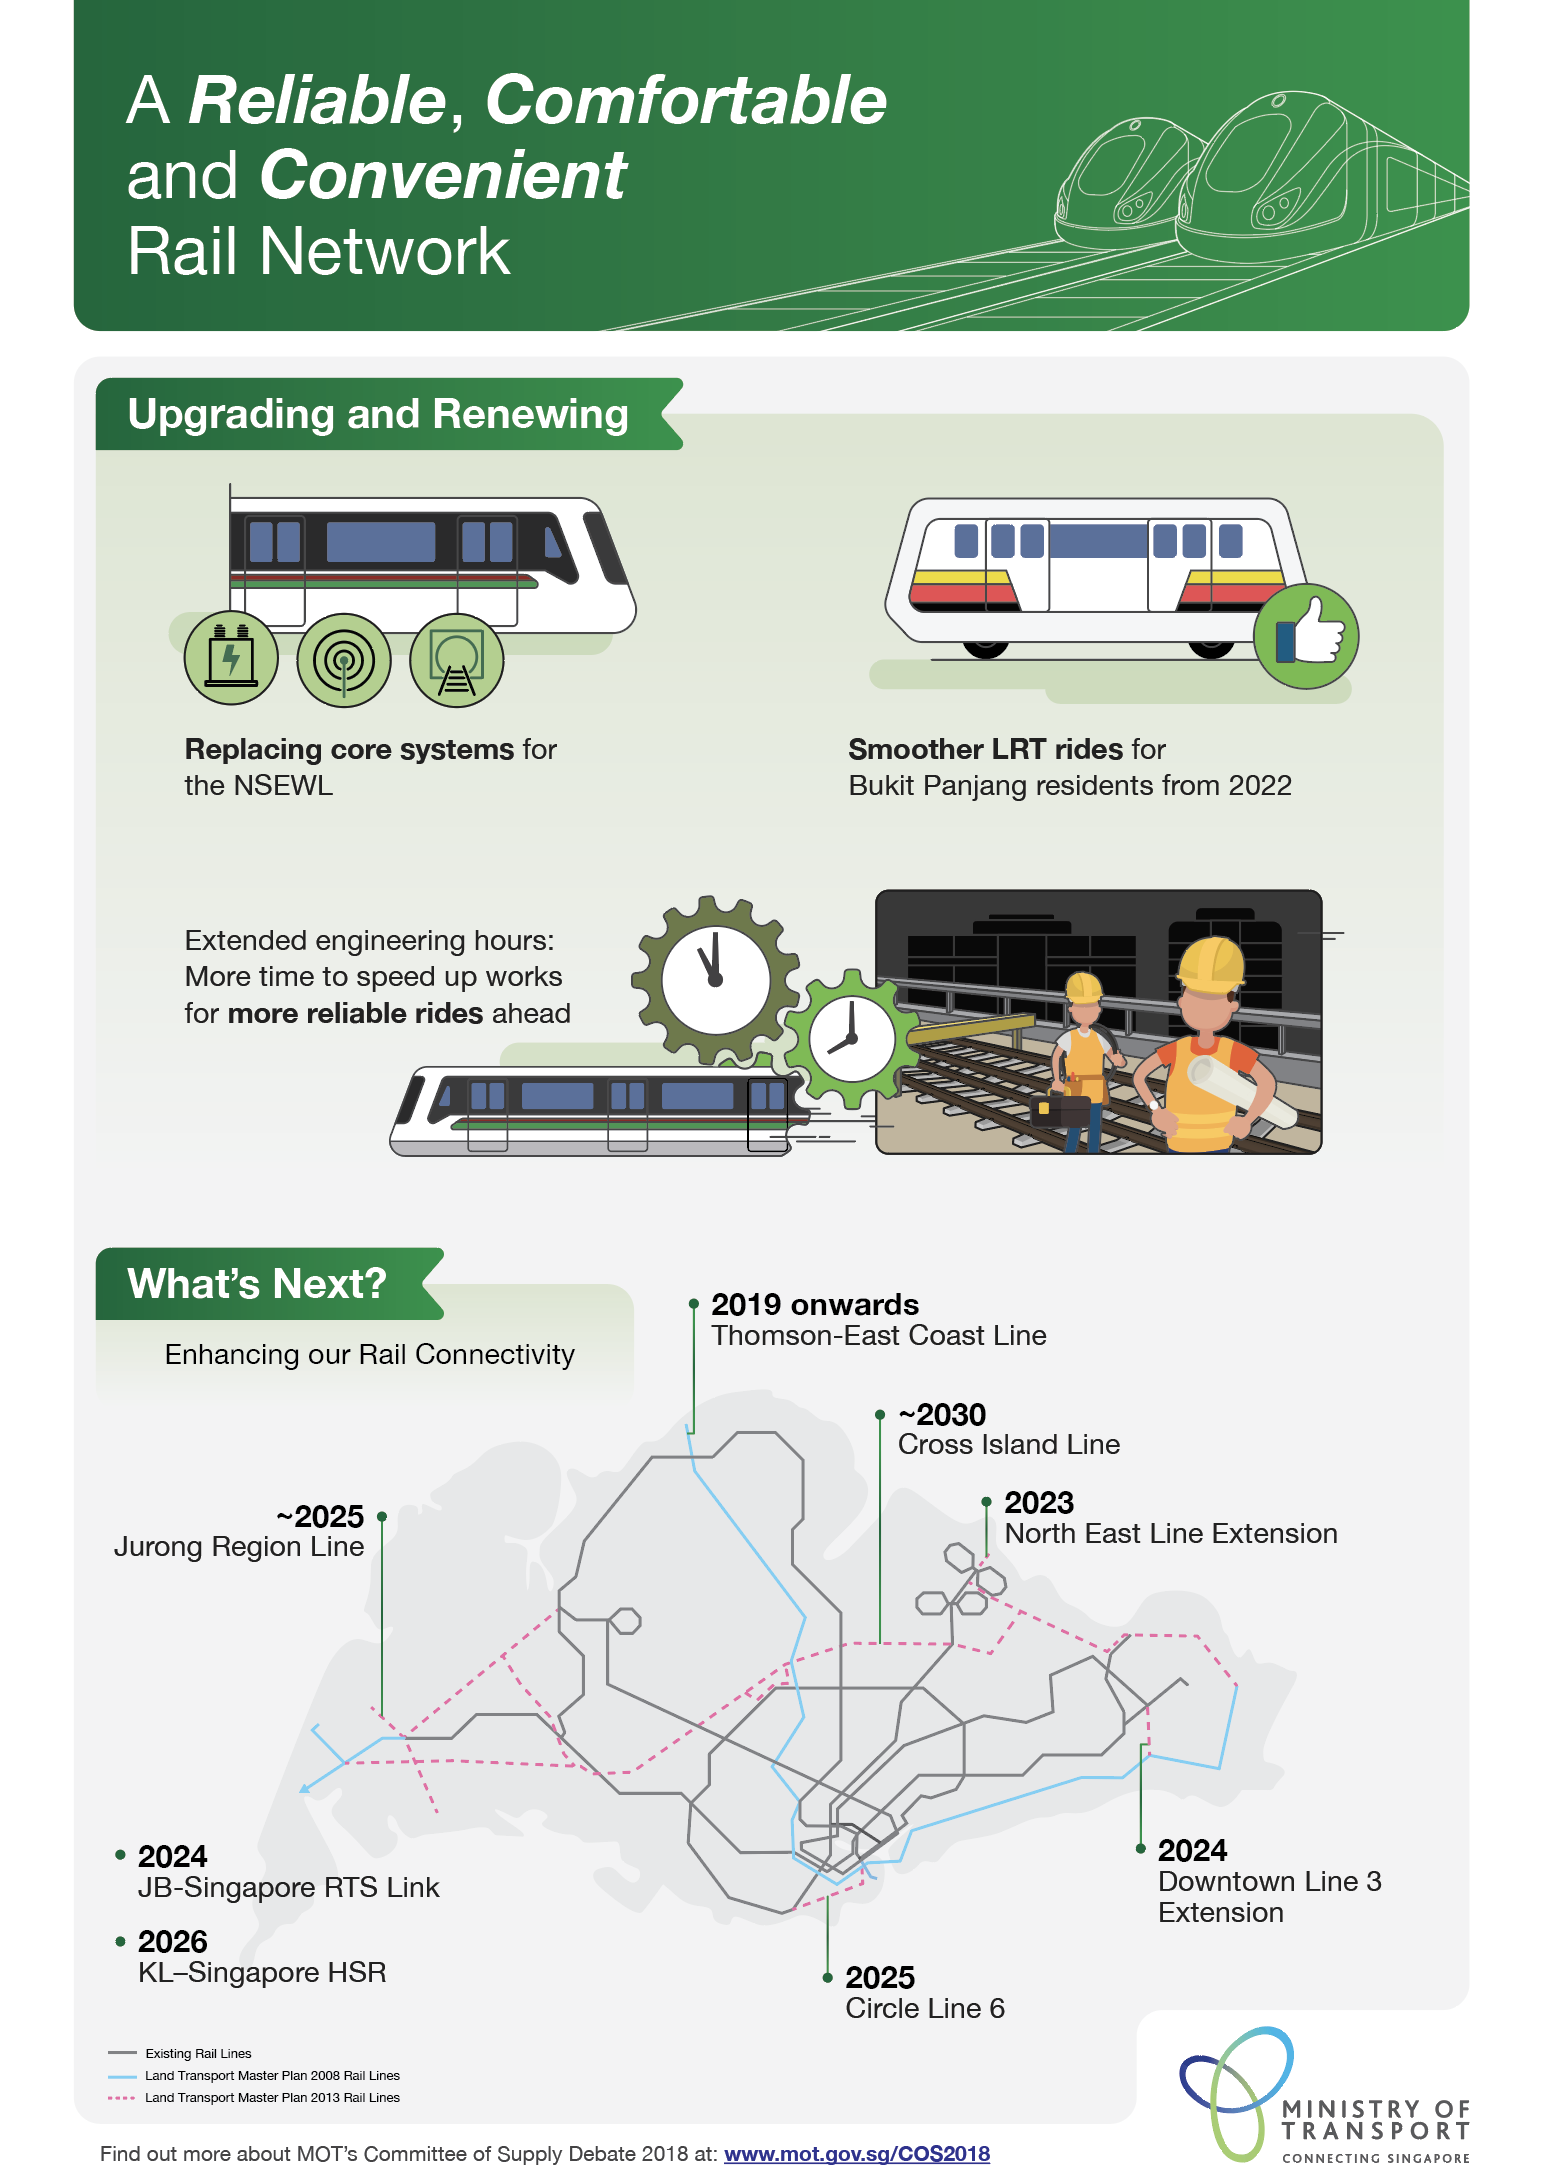 A Reliable Comfortable and Convenient Rail Network